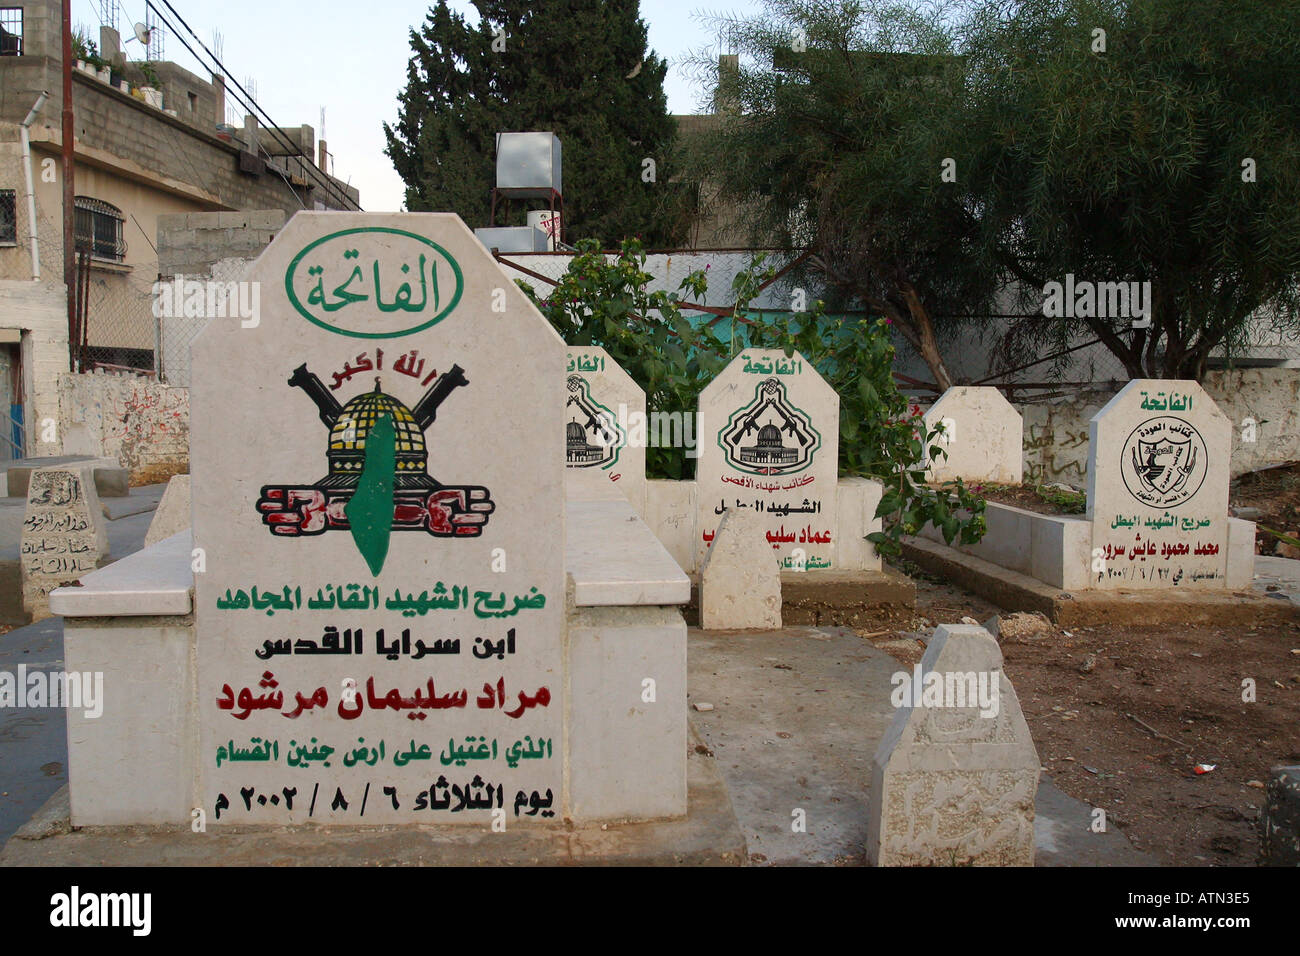 The grave of one of the many Martyrs killed during the 2nd Intifada who is buried in the Balata camp graveyard - Stock Image